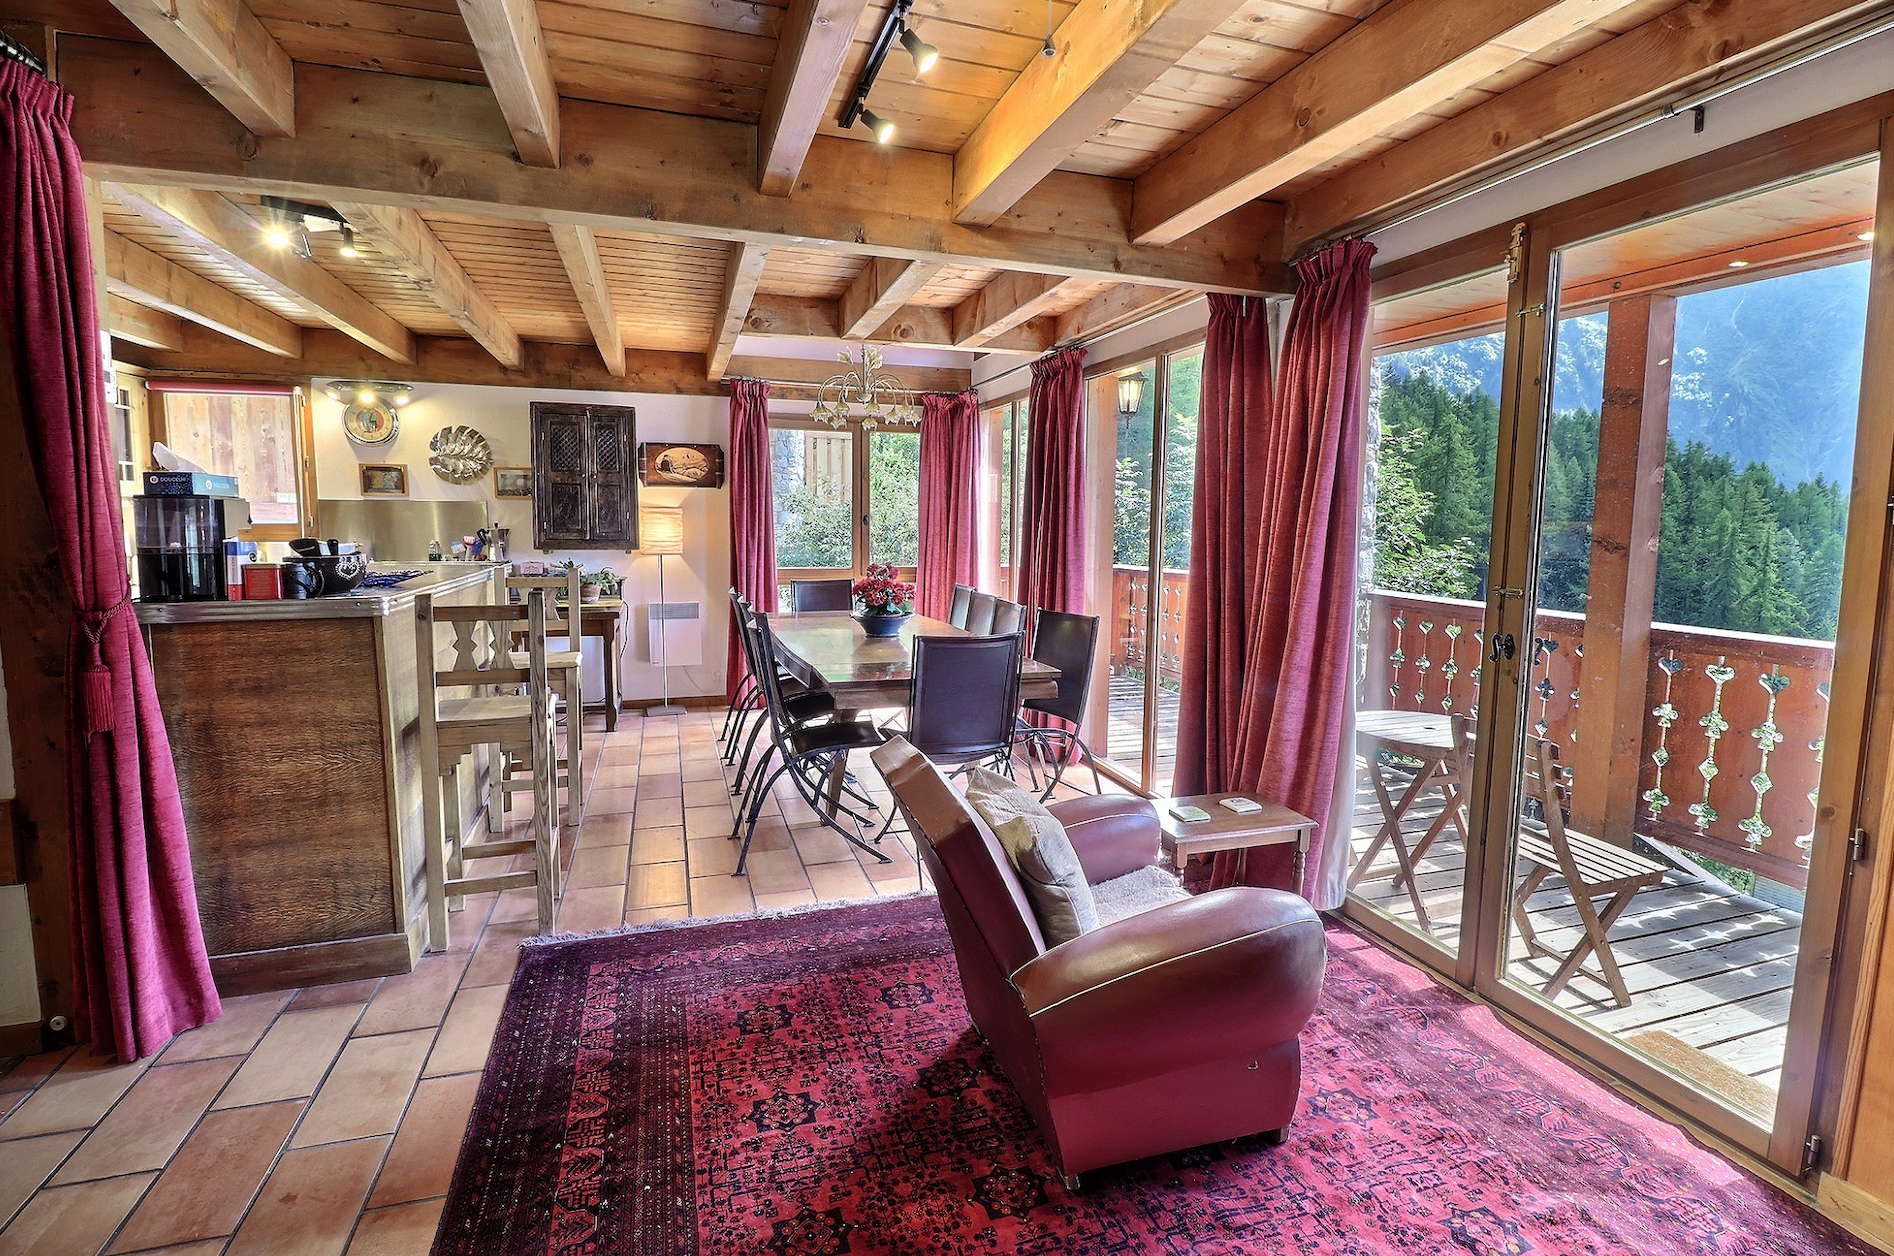 Chalet in Sainte-Foy Heights PFI International Ltd propertyfranceitaly